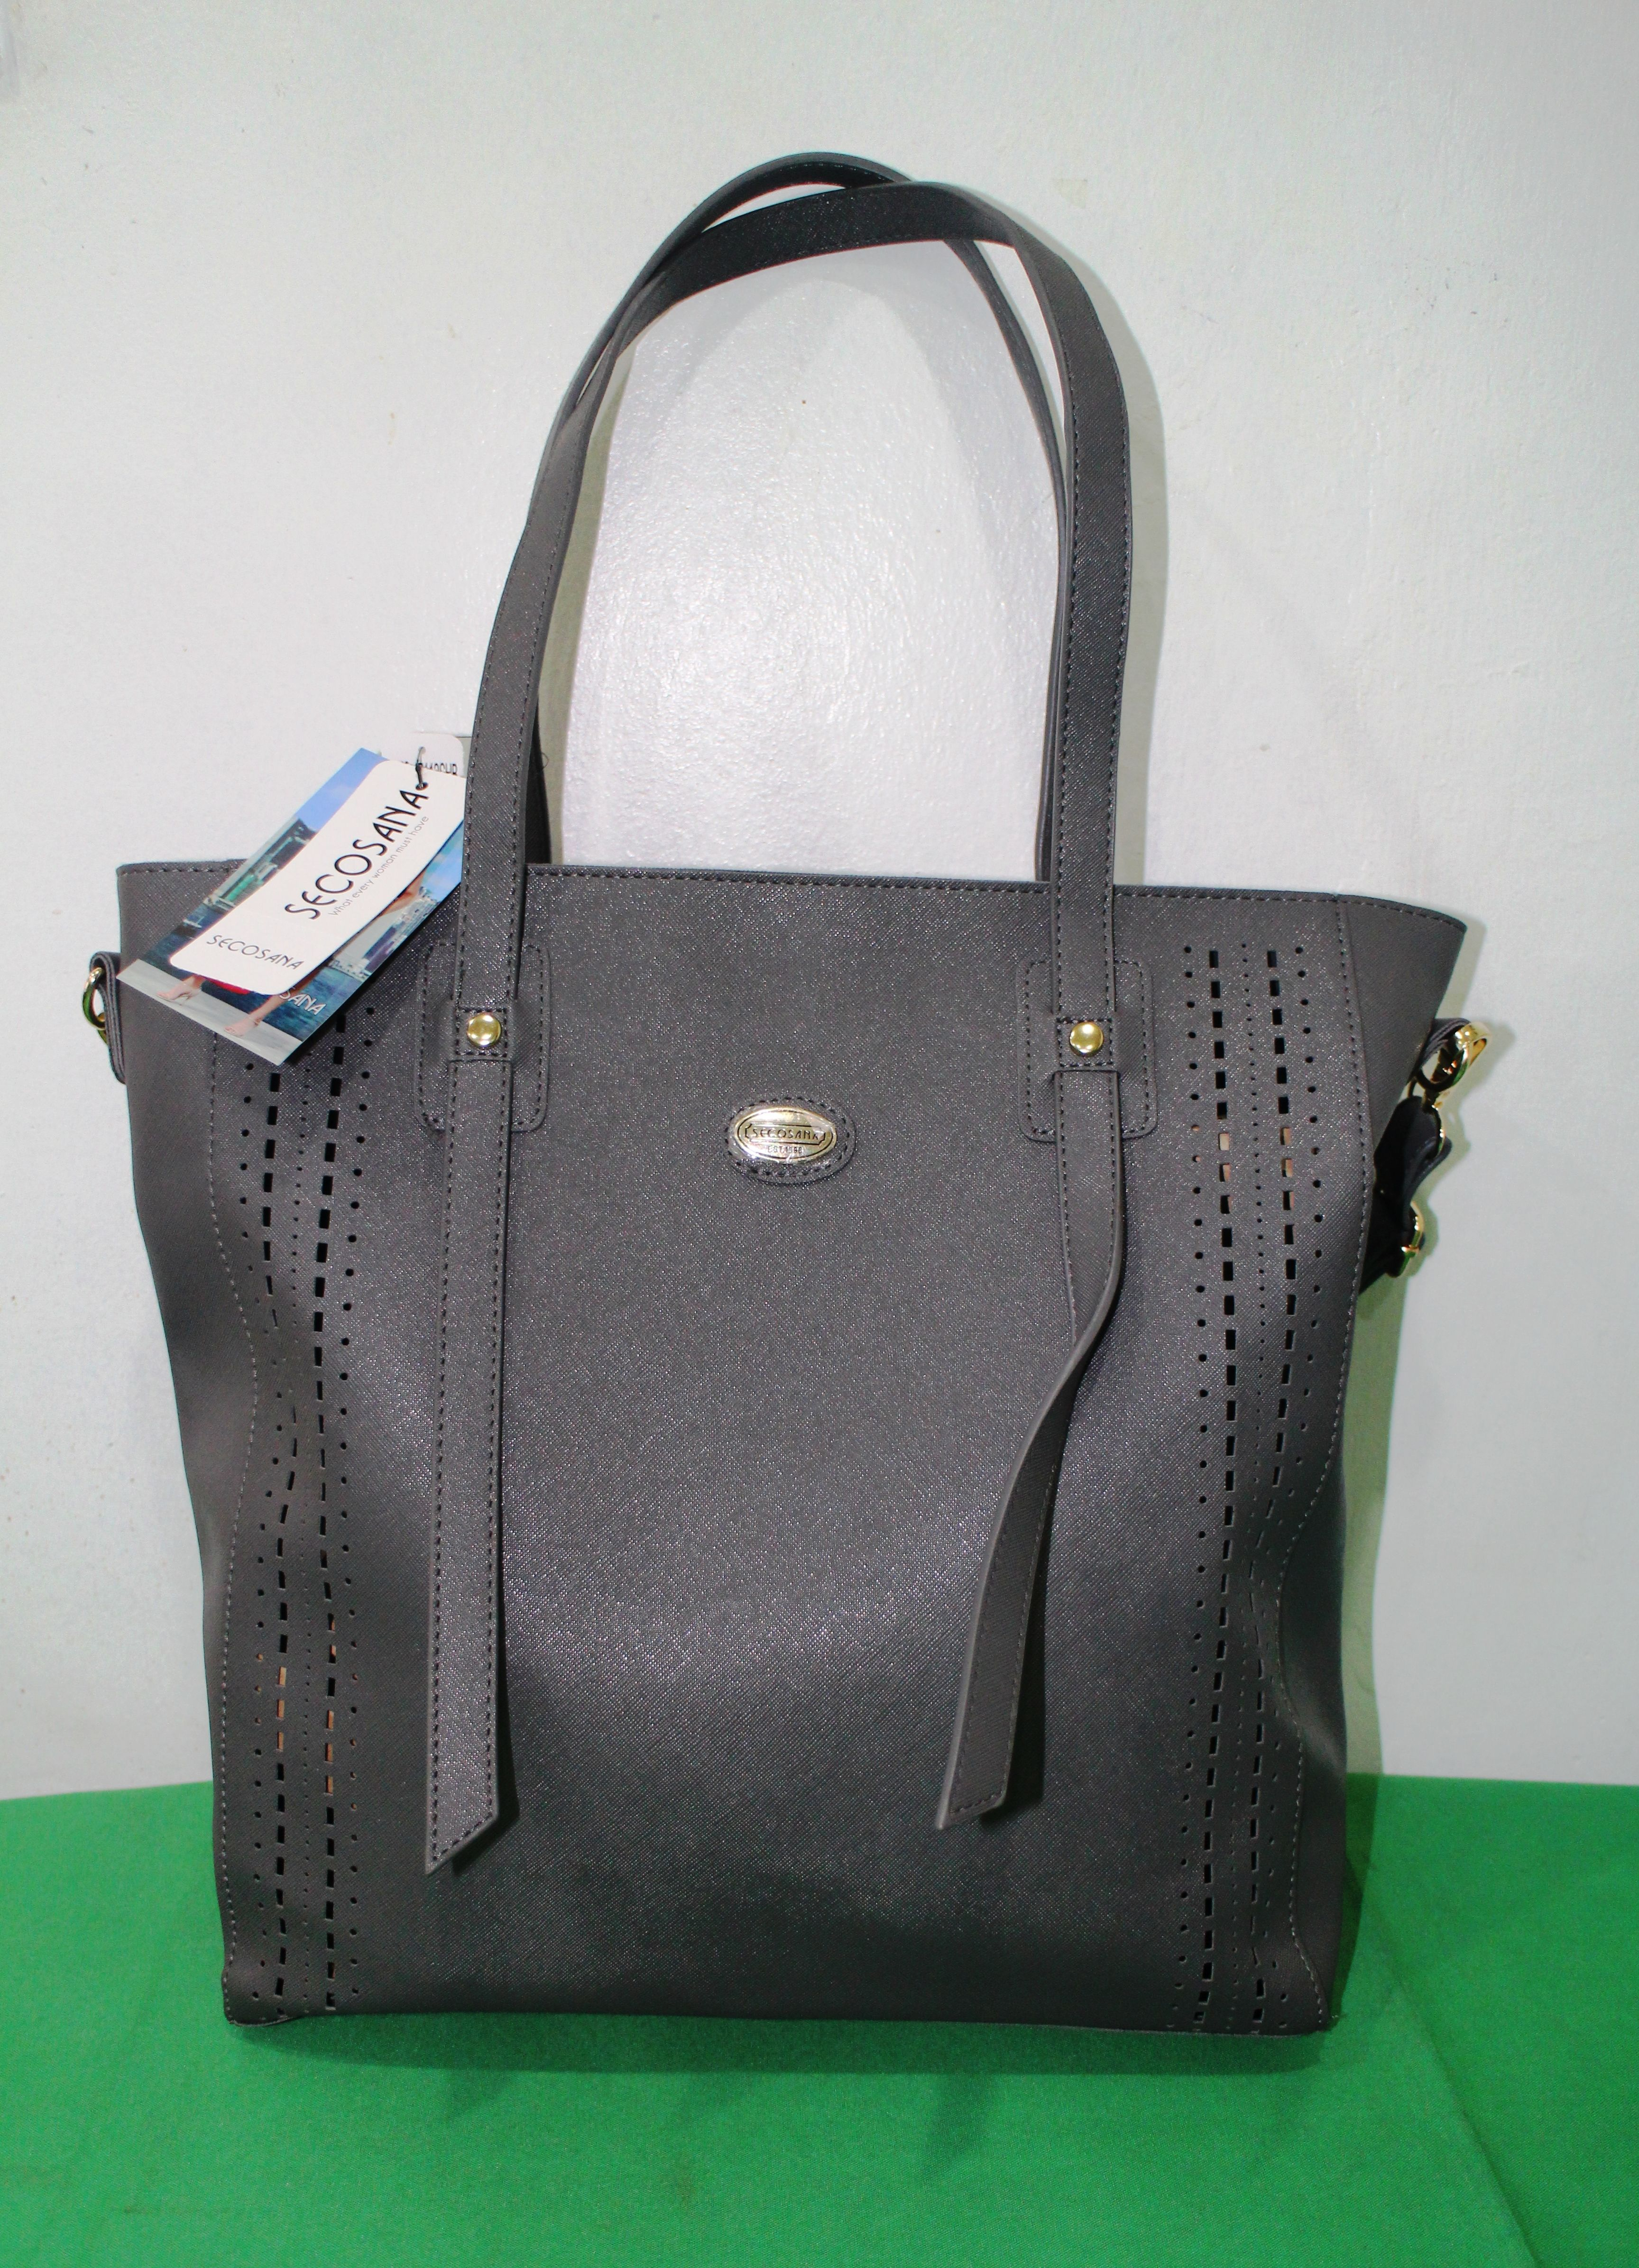 Secosana Grey Bag Price  from ₱999 to ₱750 Limited Stock Only ... b0fb9c979e167